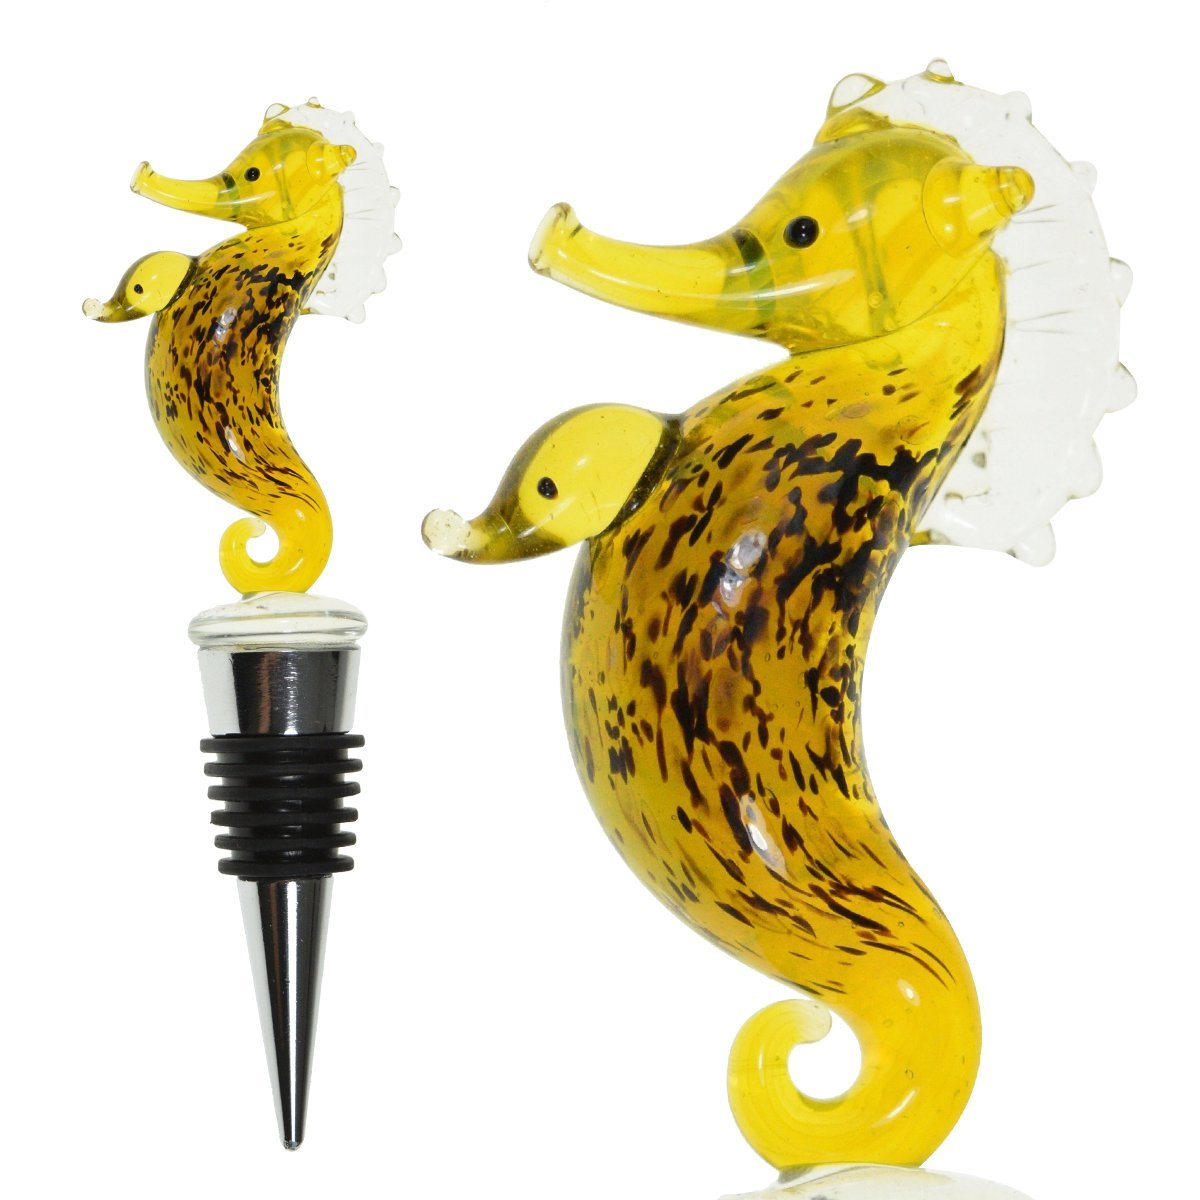 Glass Seahorse Wine Bottle Stopper (20+ Designs to Choose From) - Colorful, Unique, Handmade, Eye-Catching Decorative Glass Wine Bottle Stopper … (Seahorse)